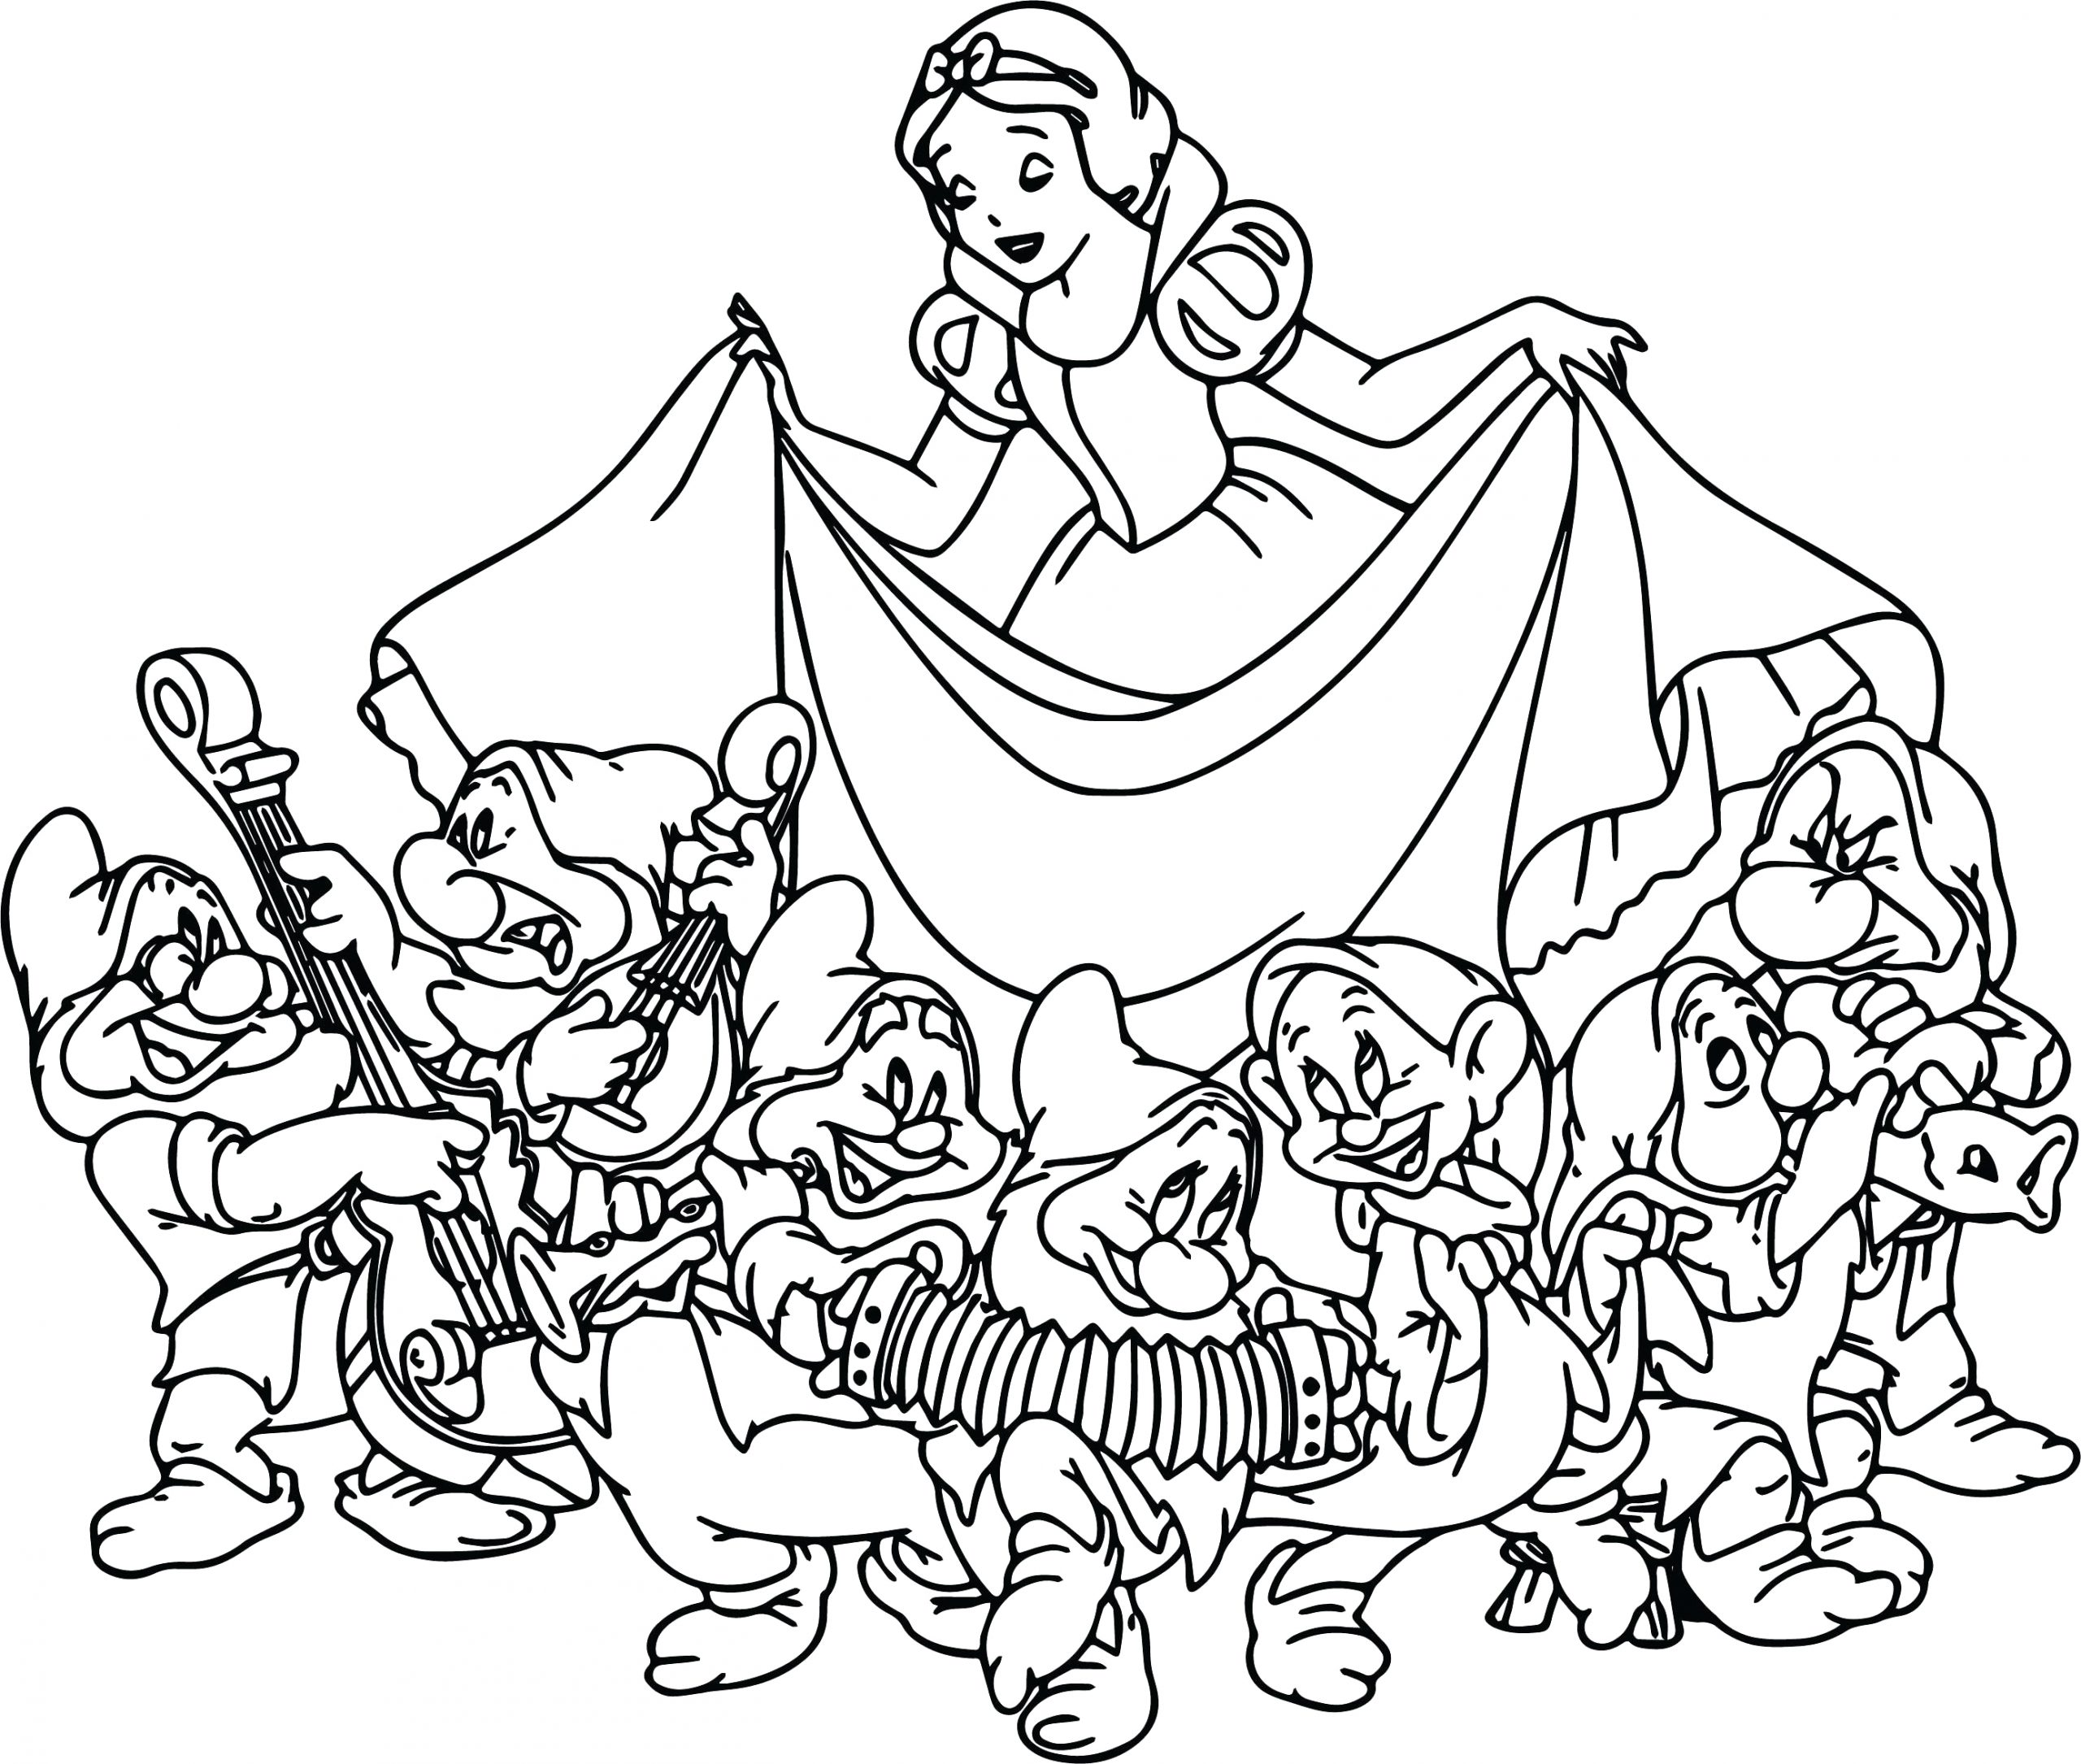 Coloring Pages for Snow White and the Seven Dwarfs 7 Dwarfs Coloring Pages